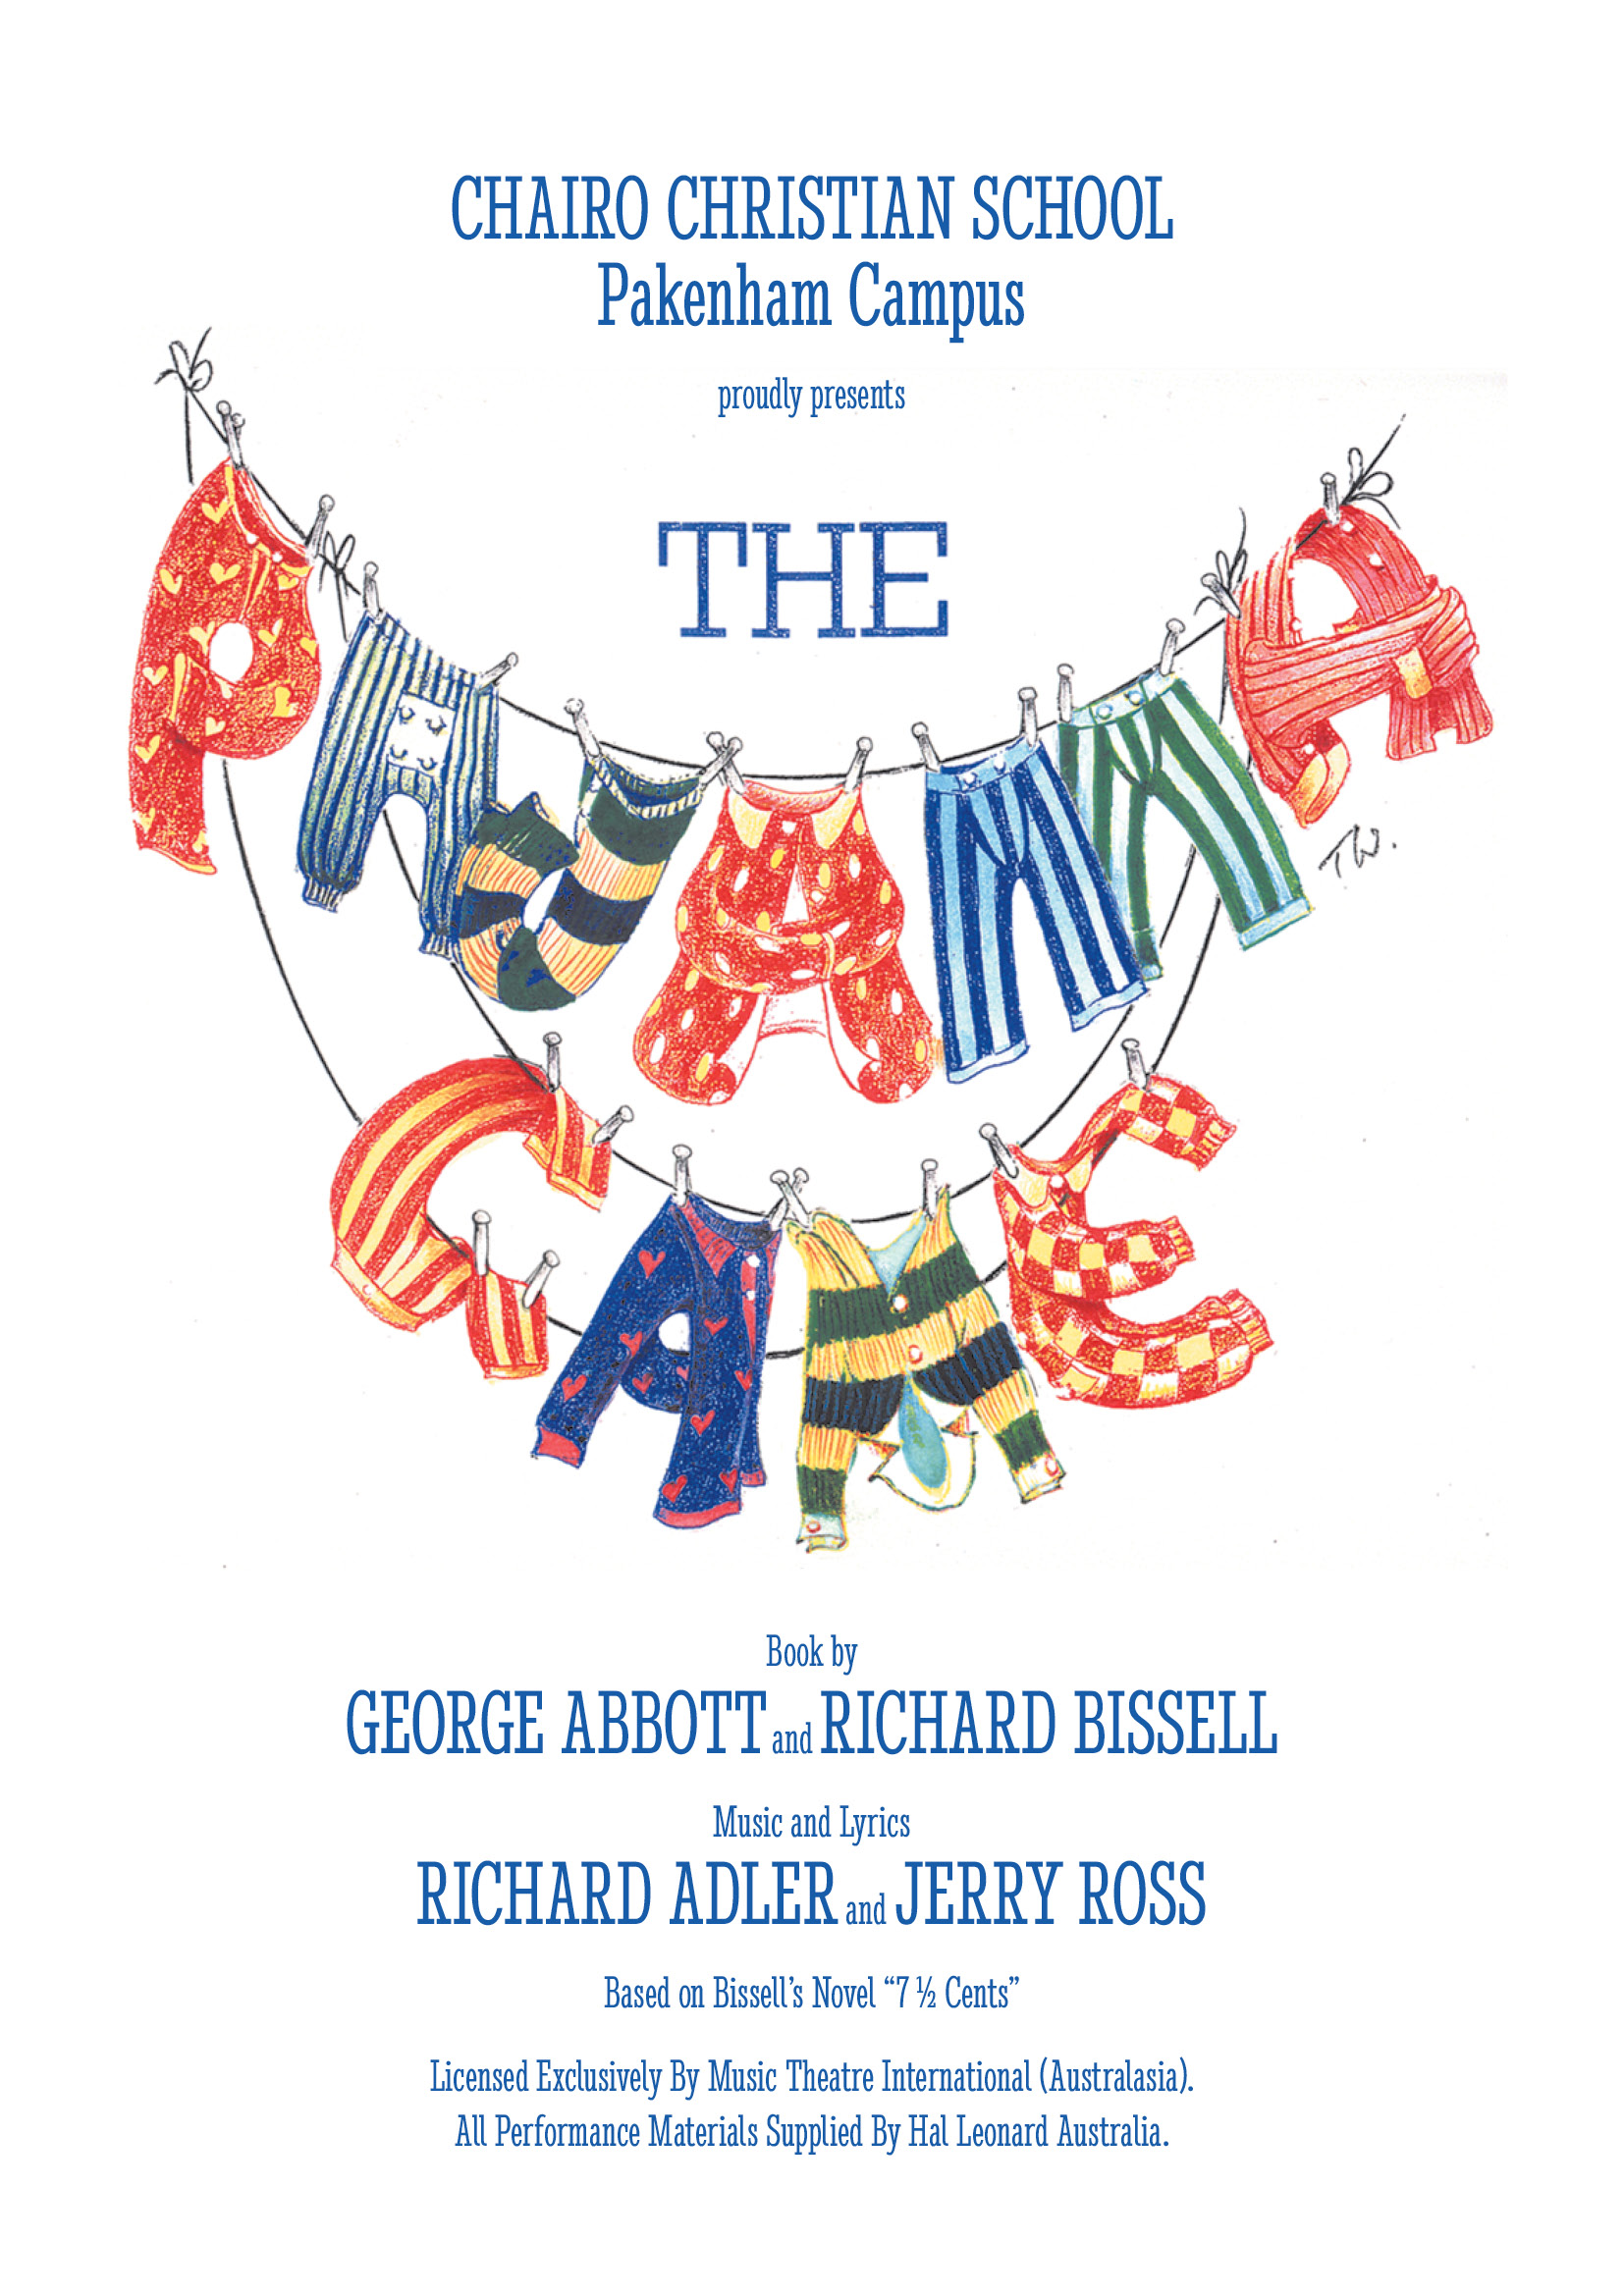 Chairo Christian School proudly presents The Pajama Game